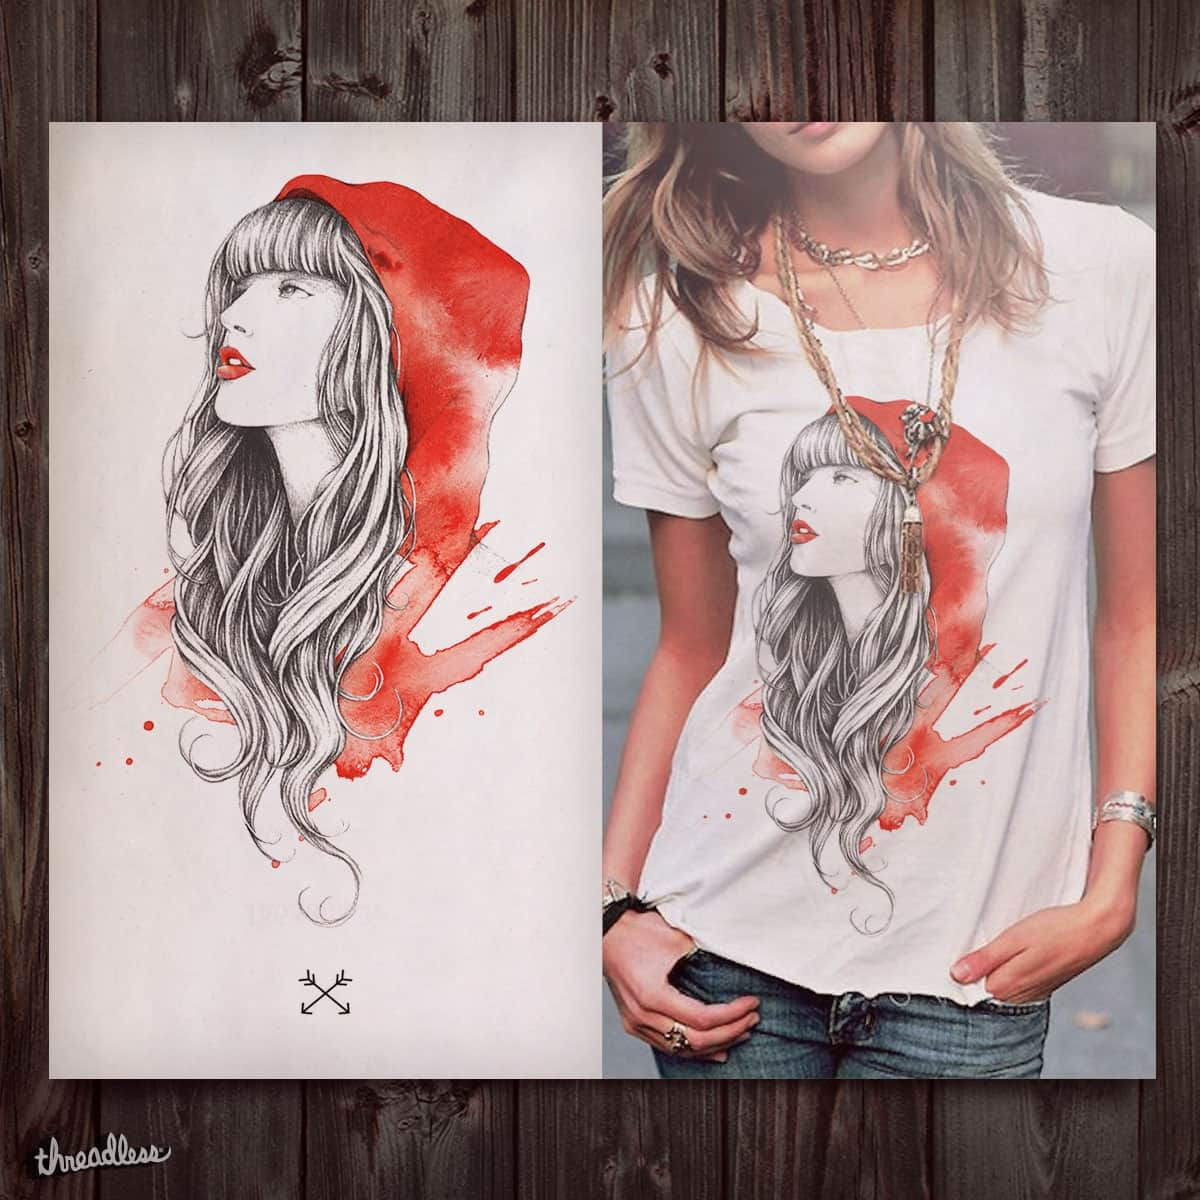 The Red Story by INDZ on Threadless